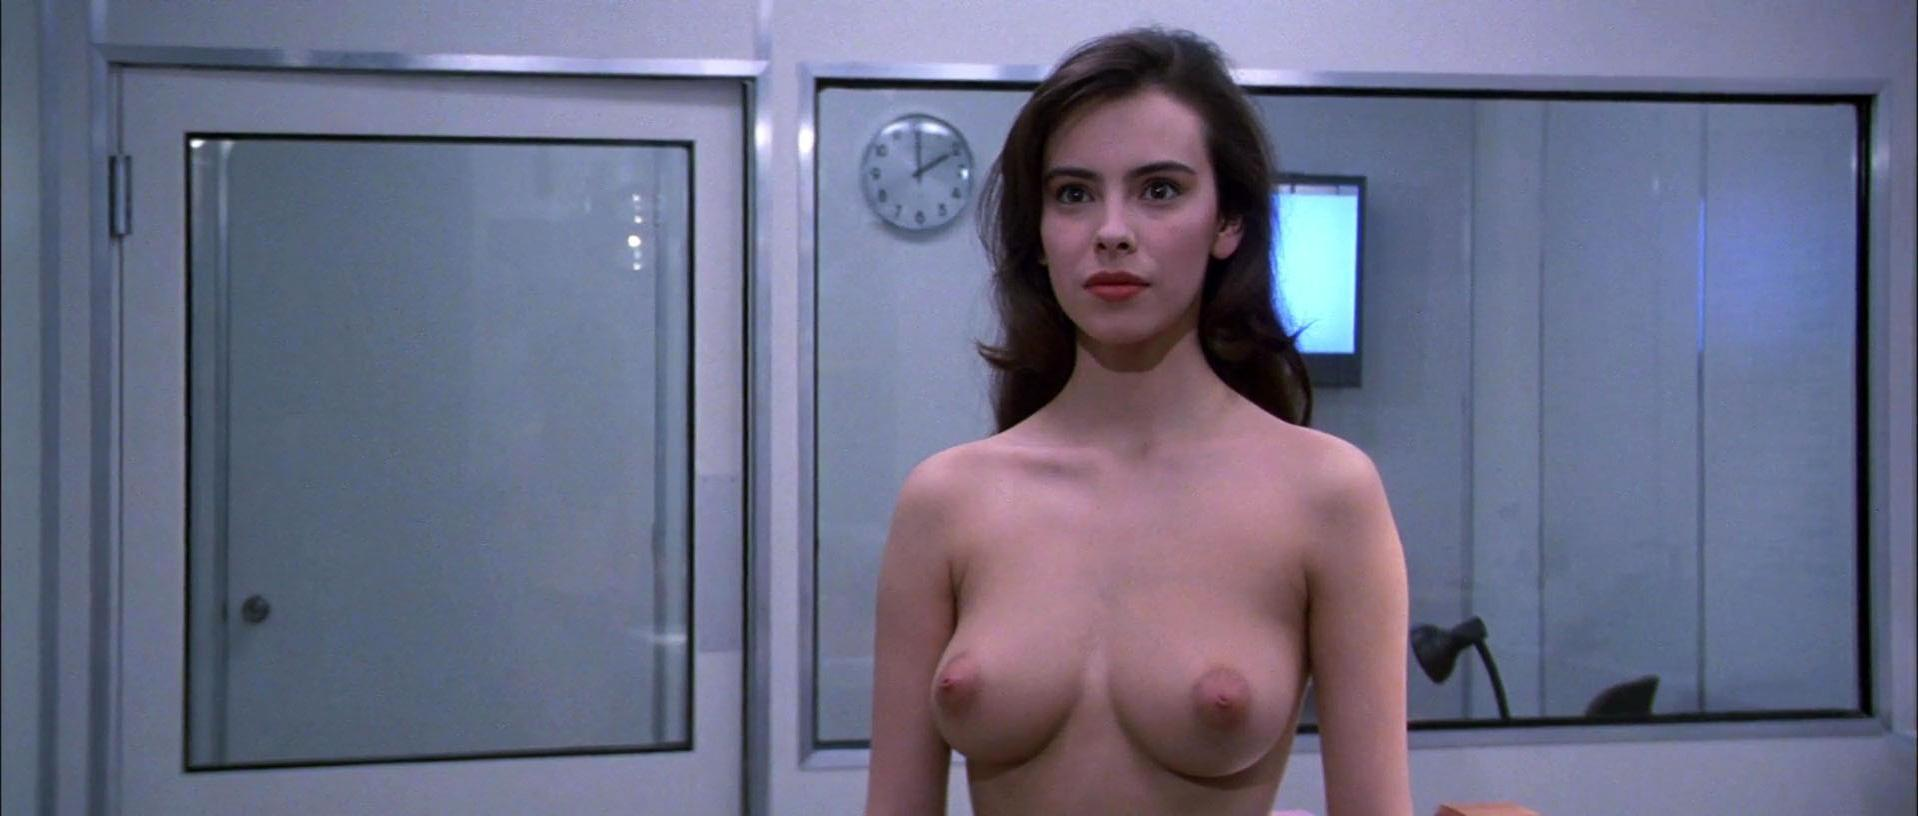 Nude Video Celebs  Mathilda May Nude - Lifeforce 1985-6436